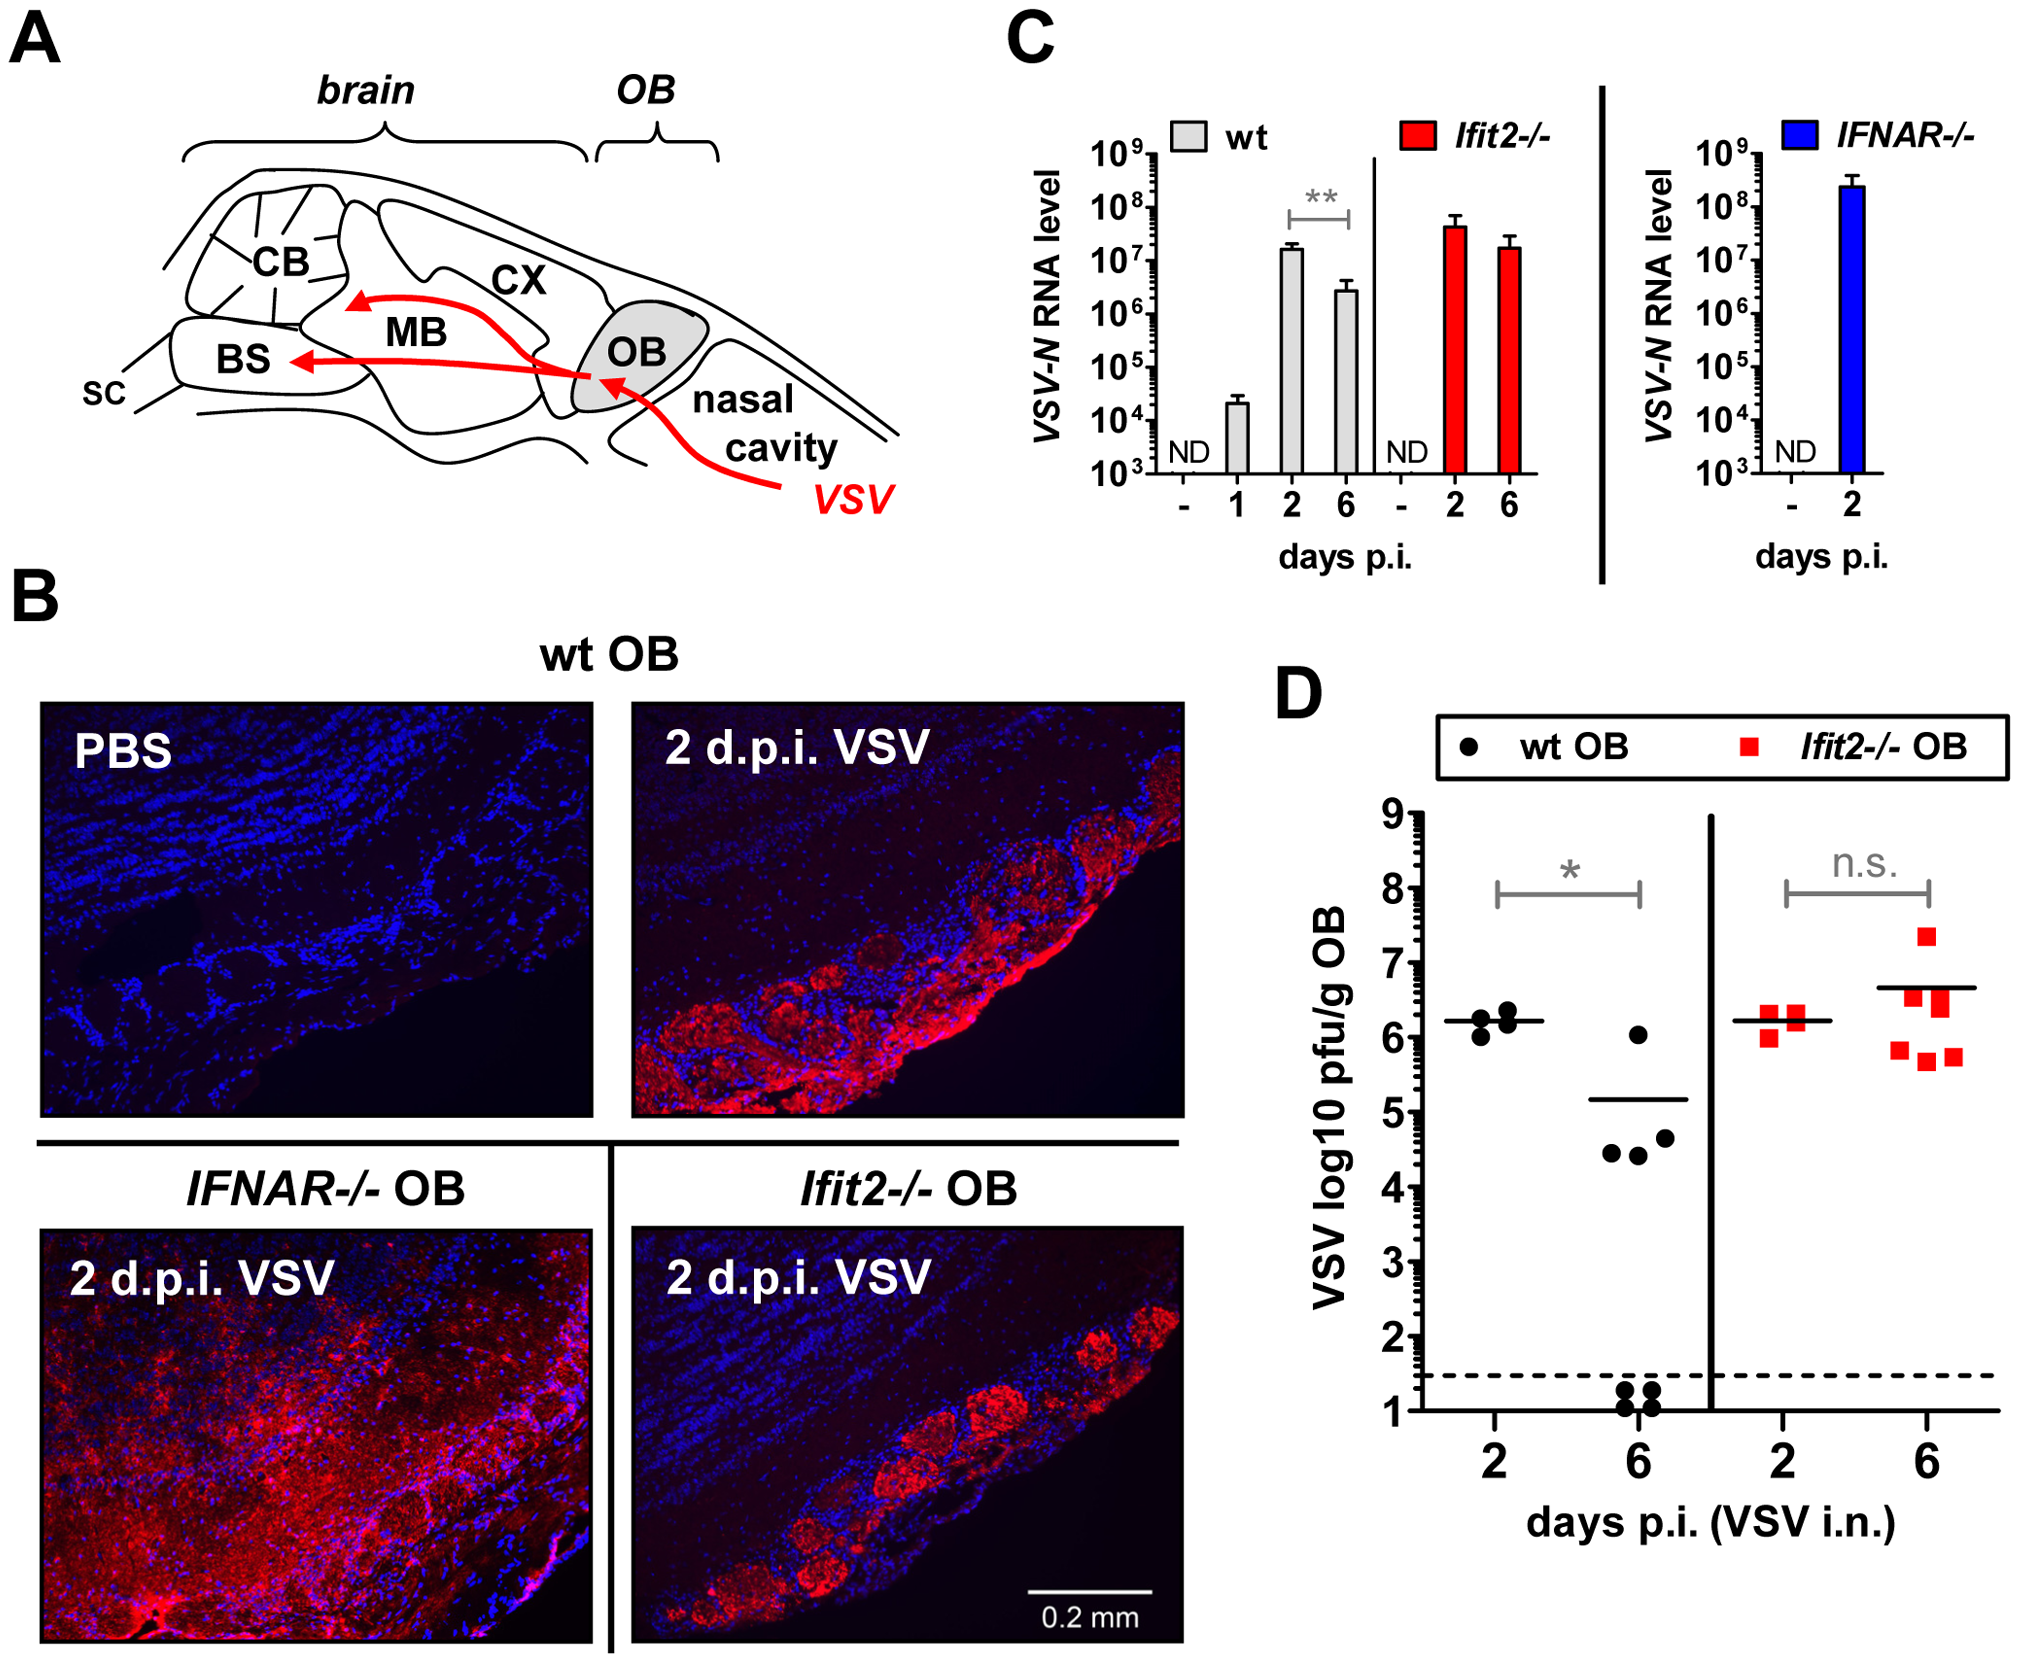 <i>Ifit2</i> does not inhibit VSV entry and replication in olfactory bulbs.